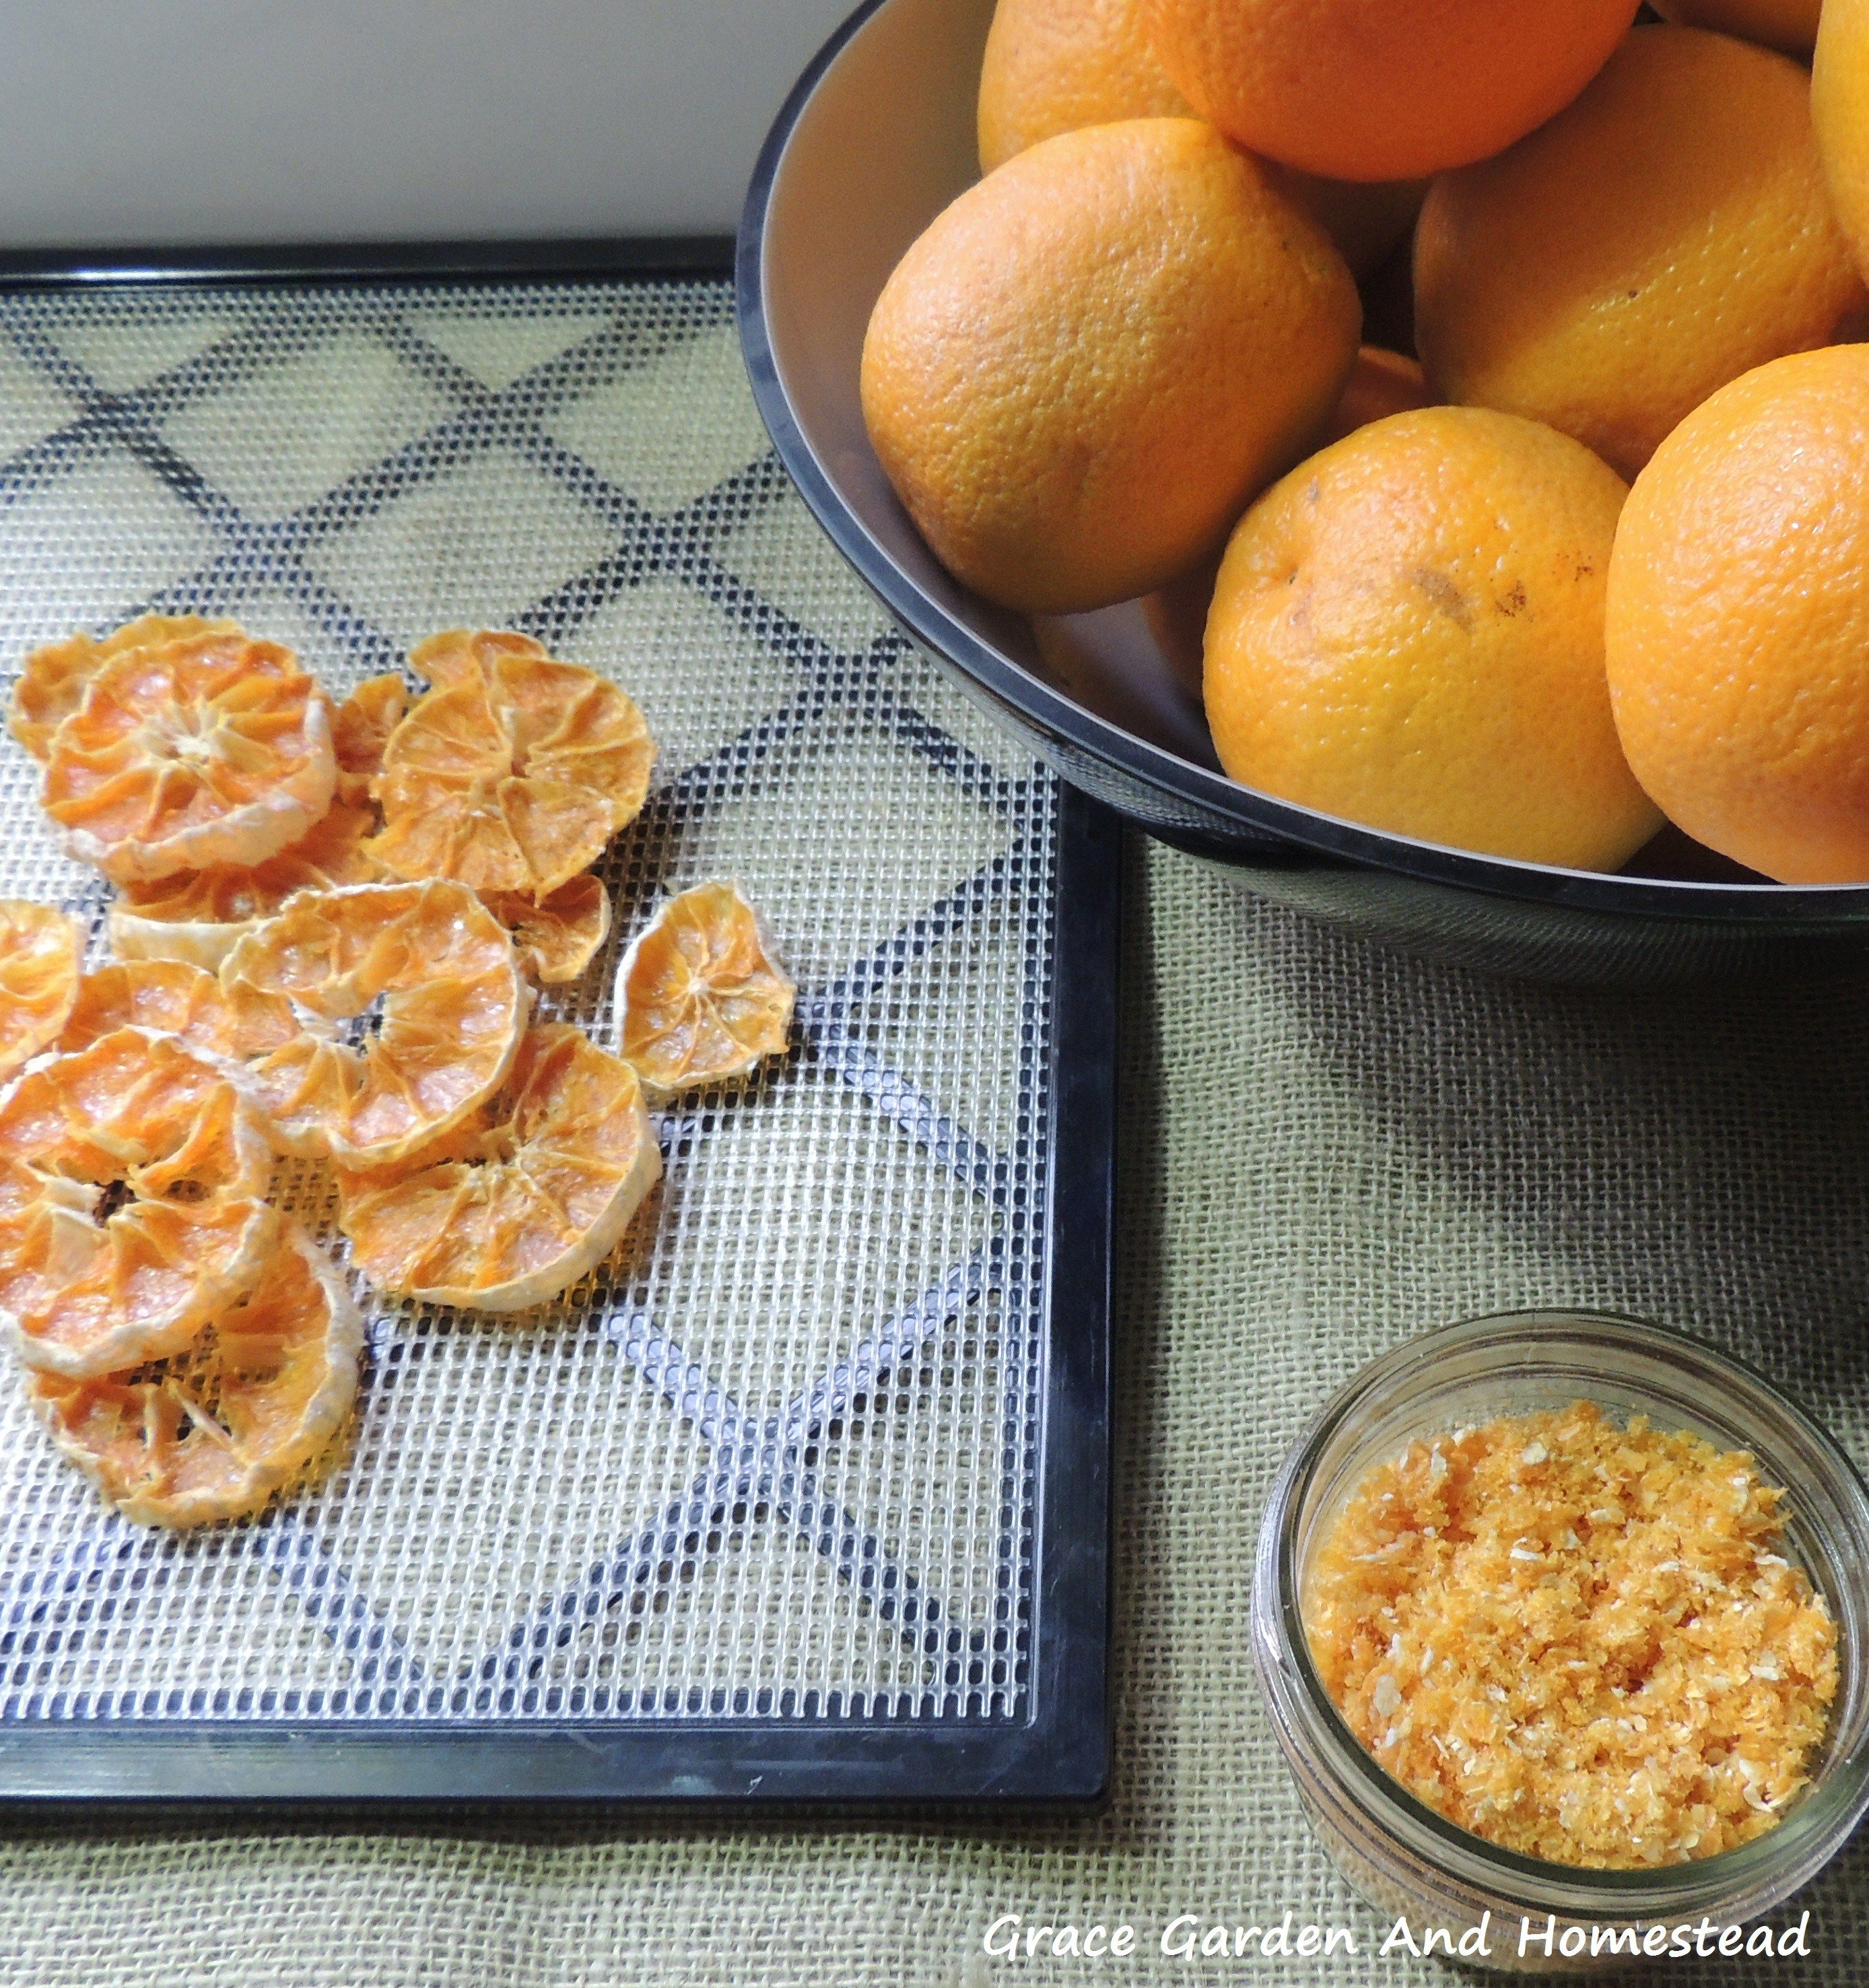 How to Dehydrate Oranges